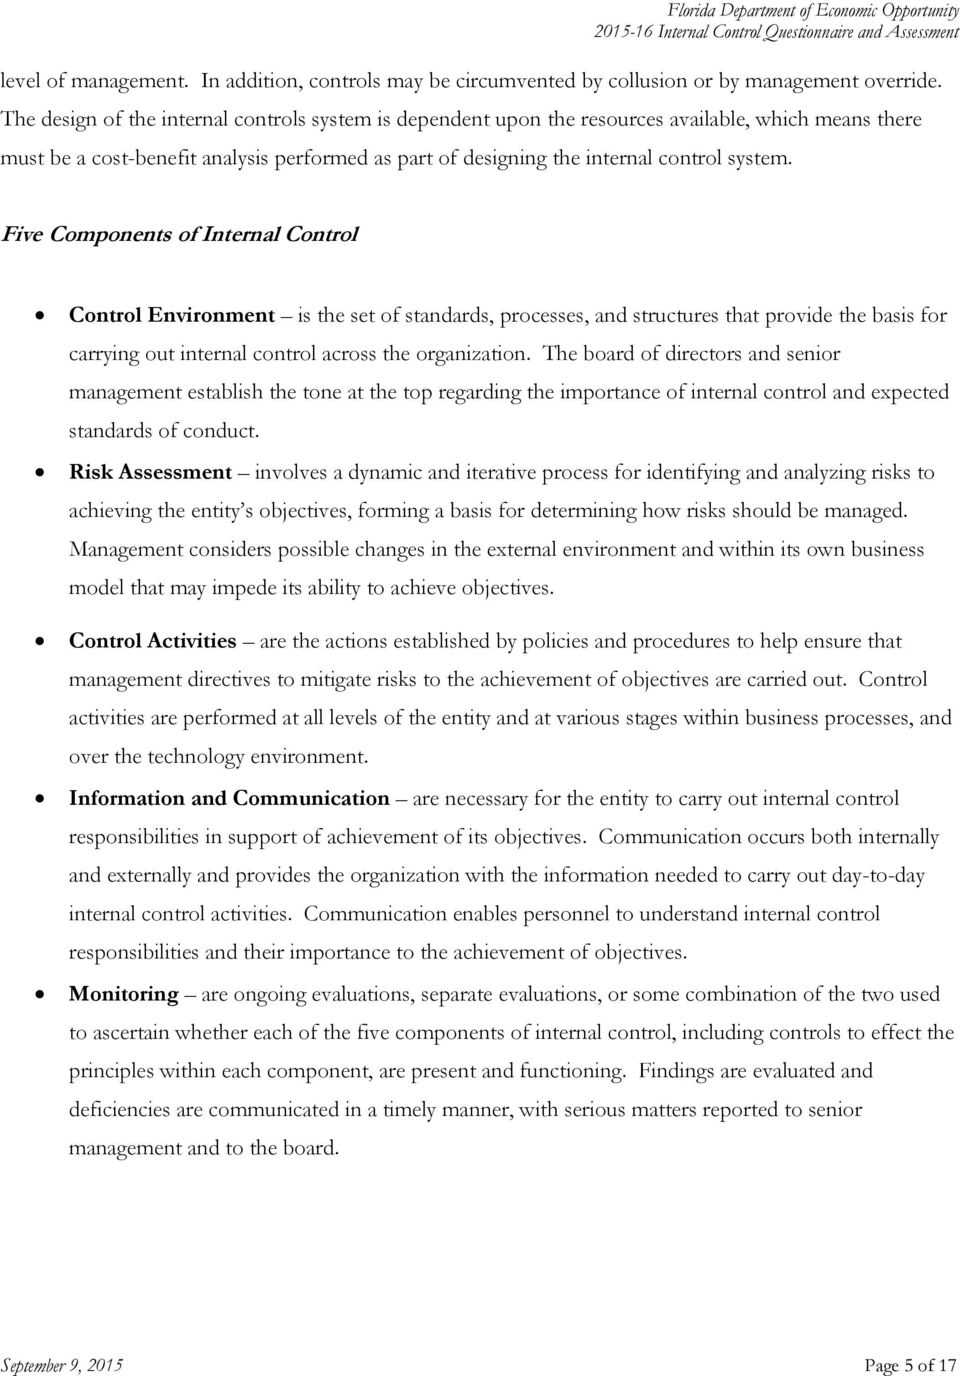 Five Components of Internal Control Control Environment is the set of standards, processes, and structures that provide the basis for carrying out internal control across the organization.